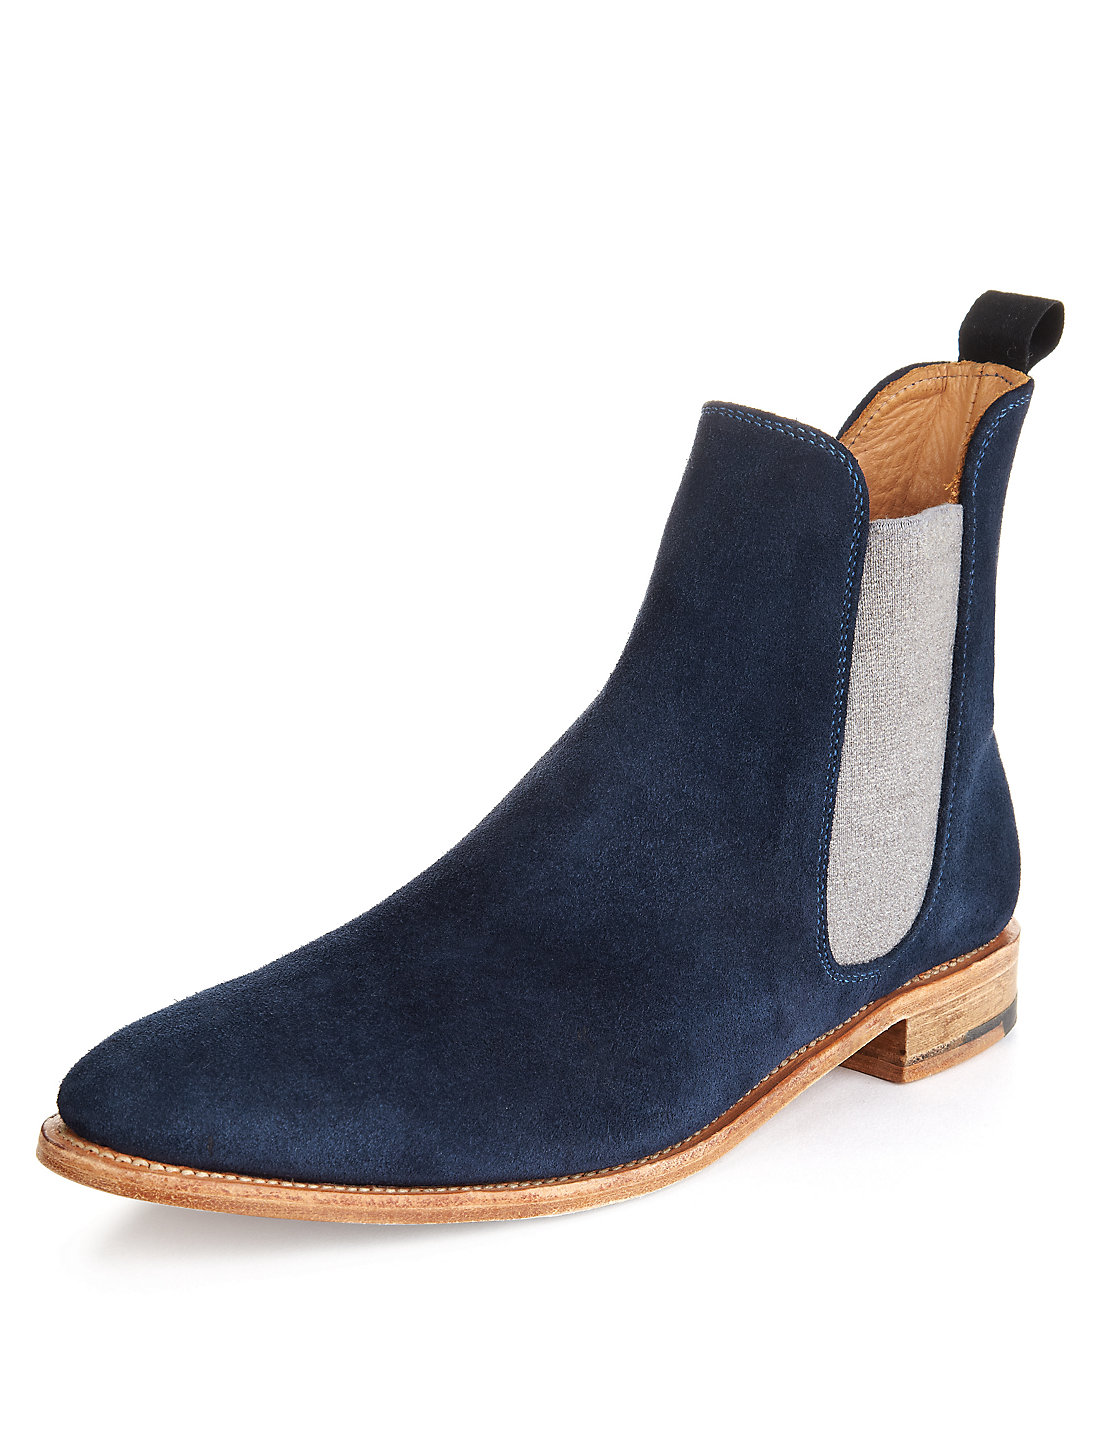 handmade mens chelsea boots fashion blue ankle high